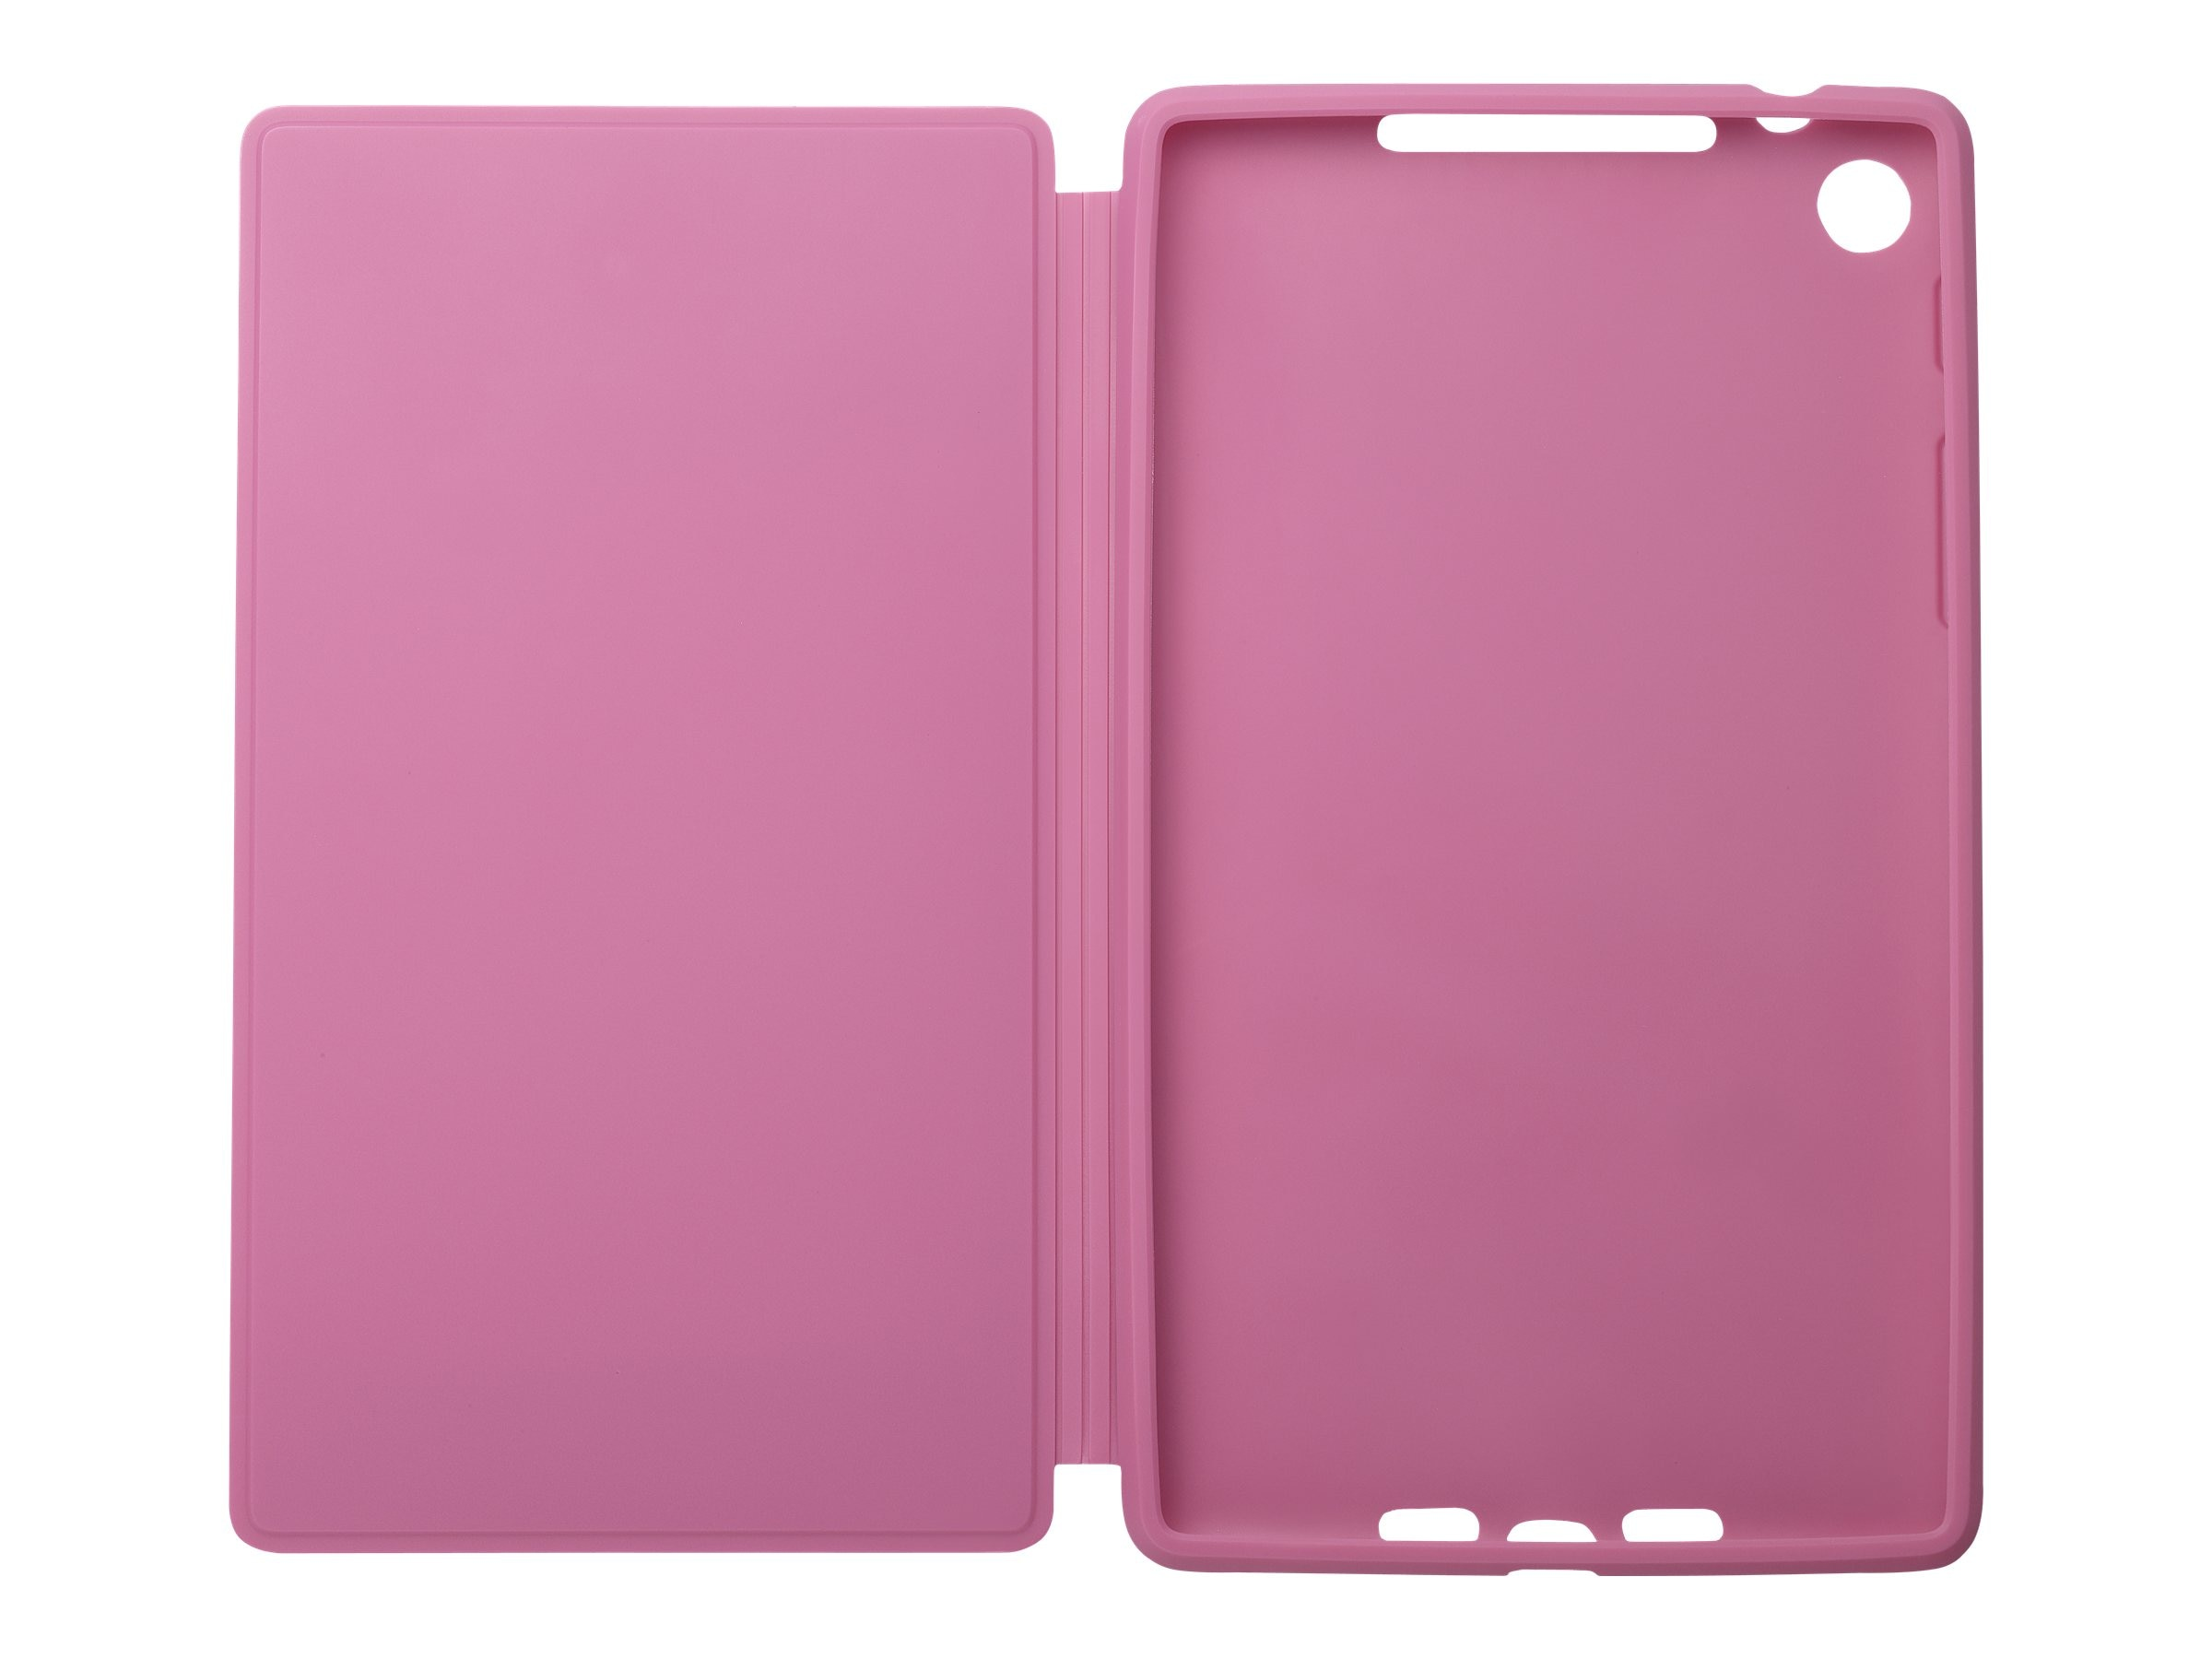 Asus Travel Cover for 2013 Nexus 7, Pink, 90-XB3TOKSL001P0-, 18011613, Carrying Cases - Tablets & eReaders